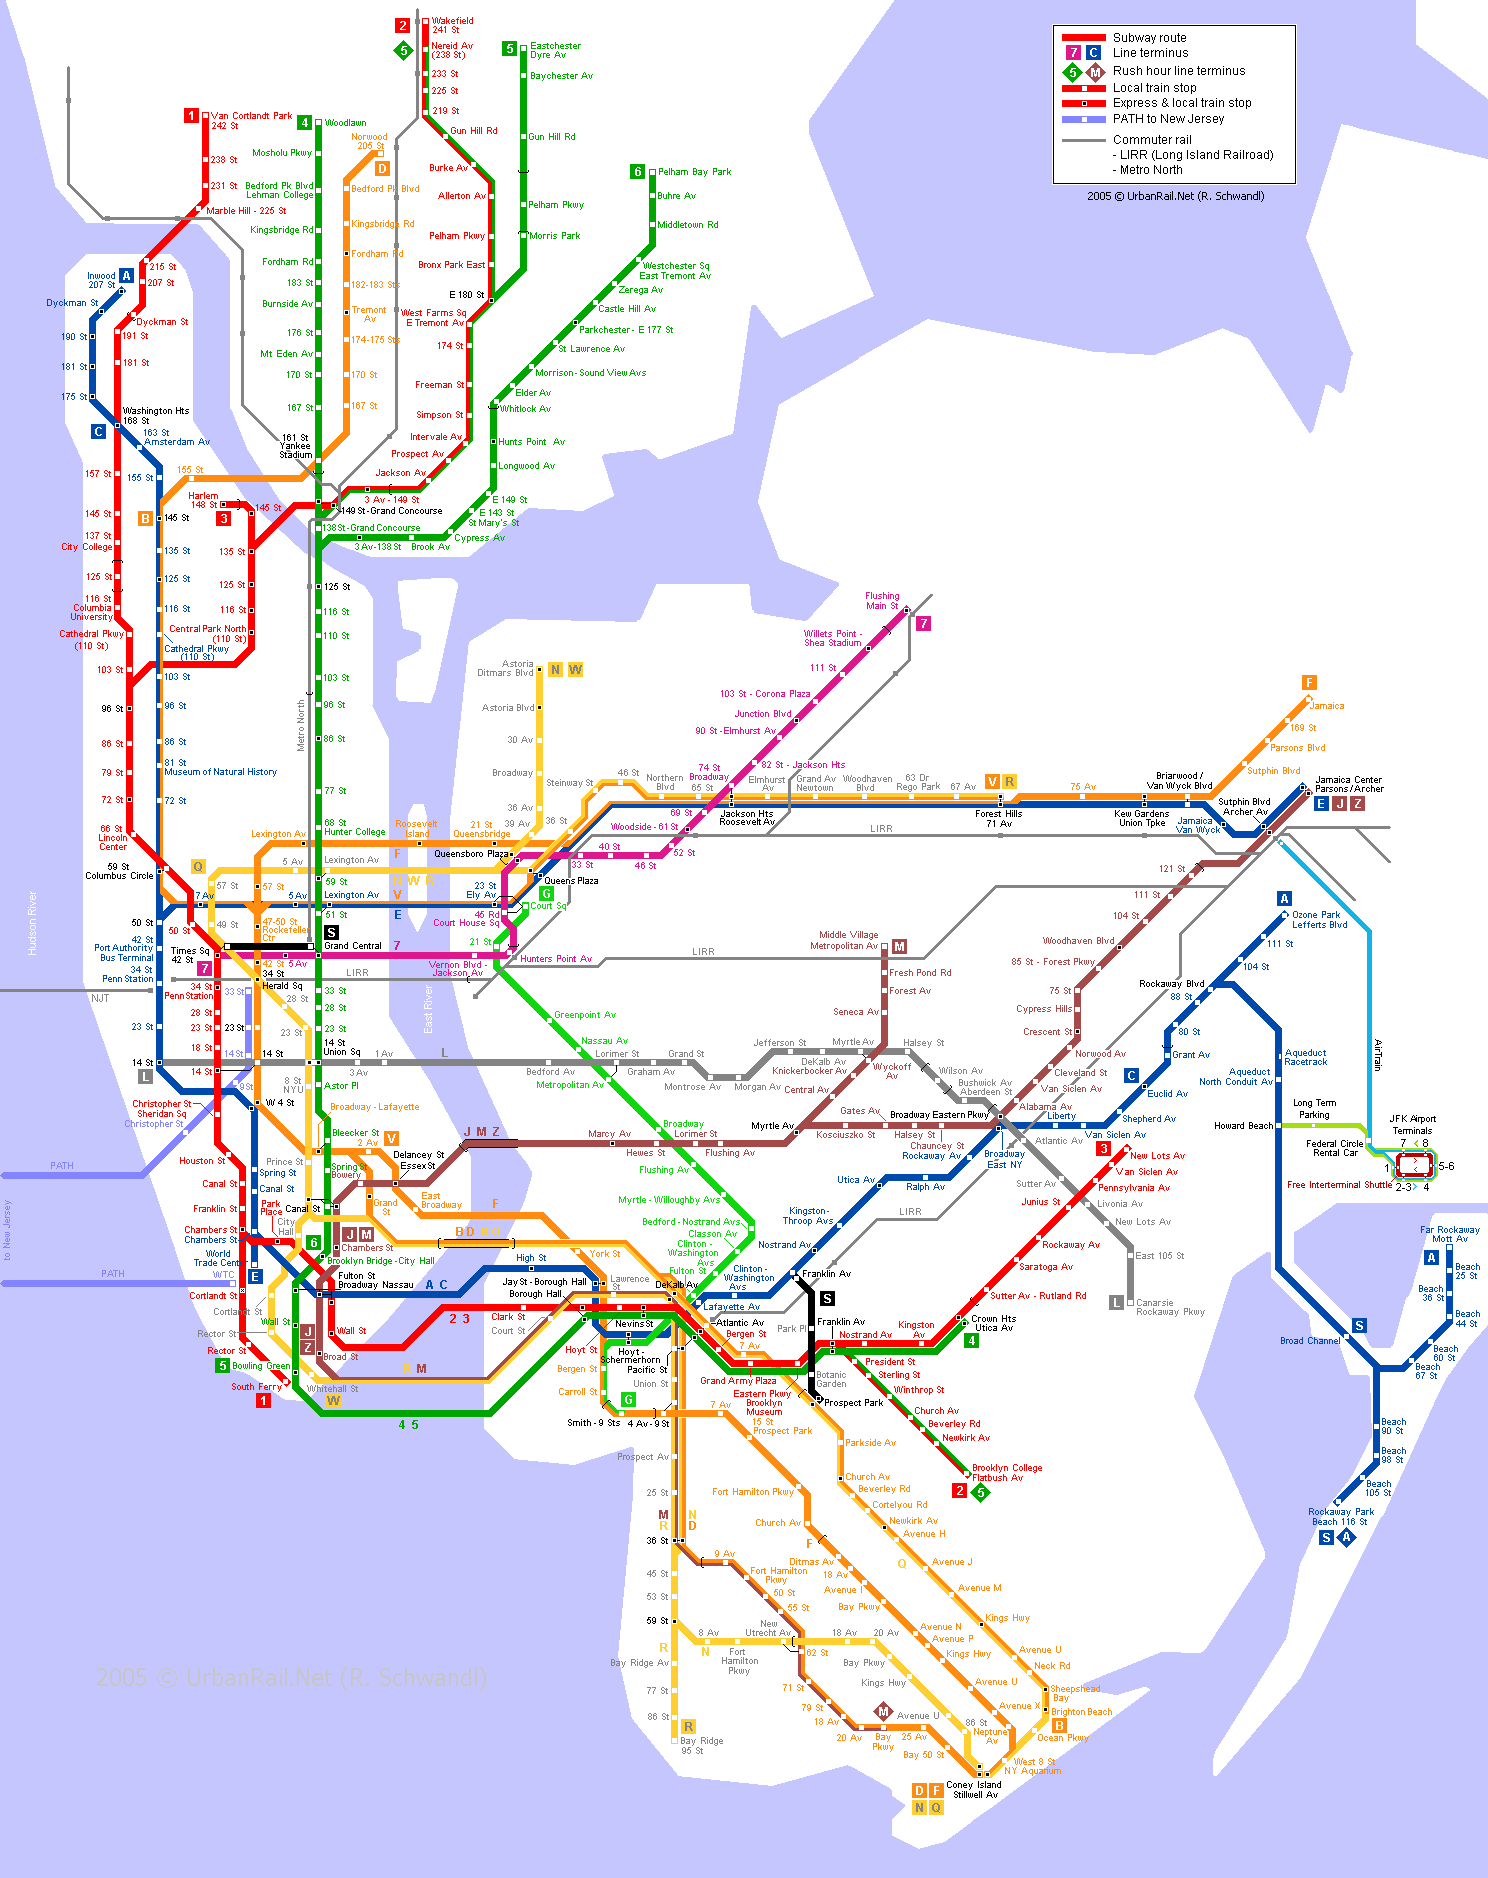 Download New York Subway Map.New York Subway Map For Download Metro In New York High